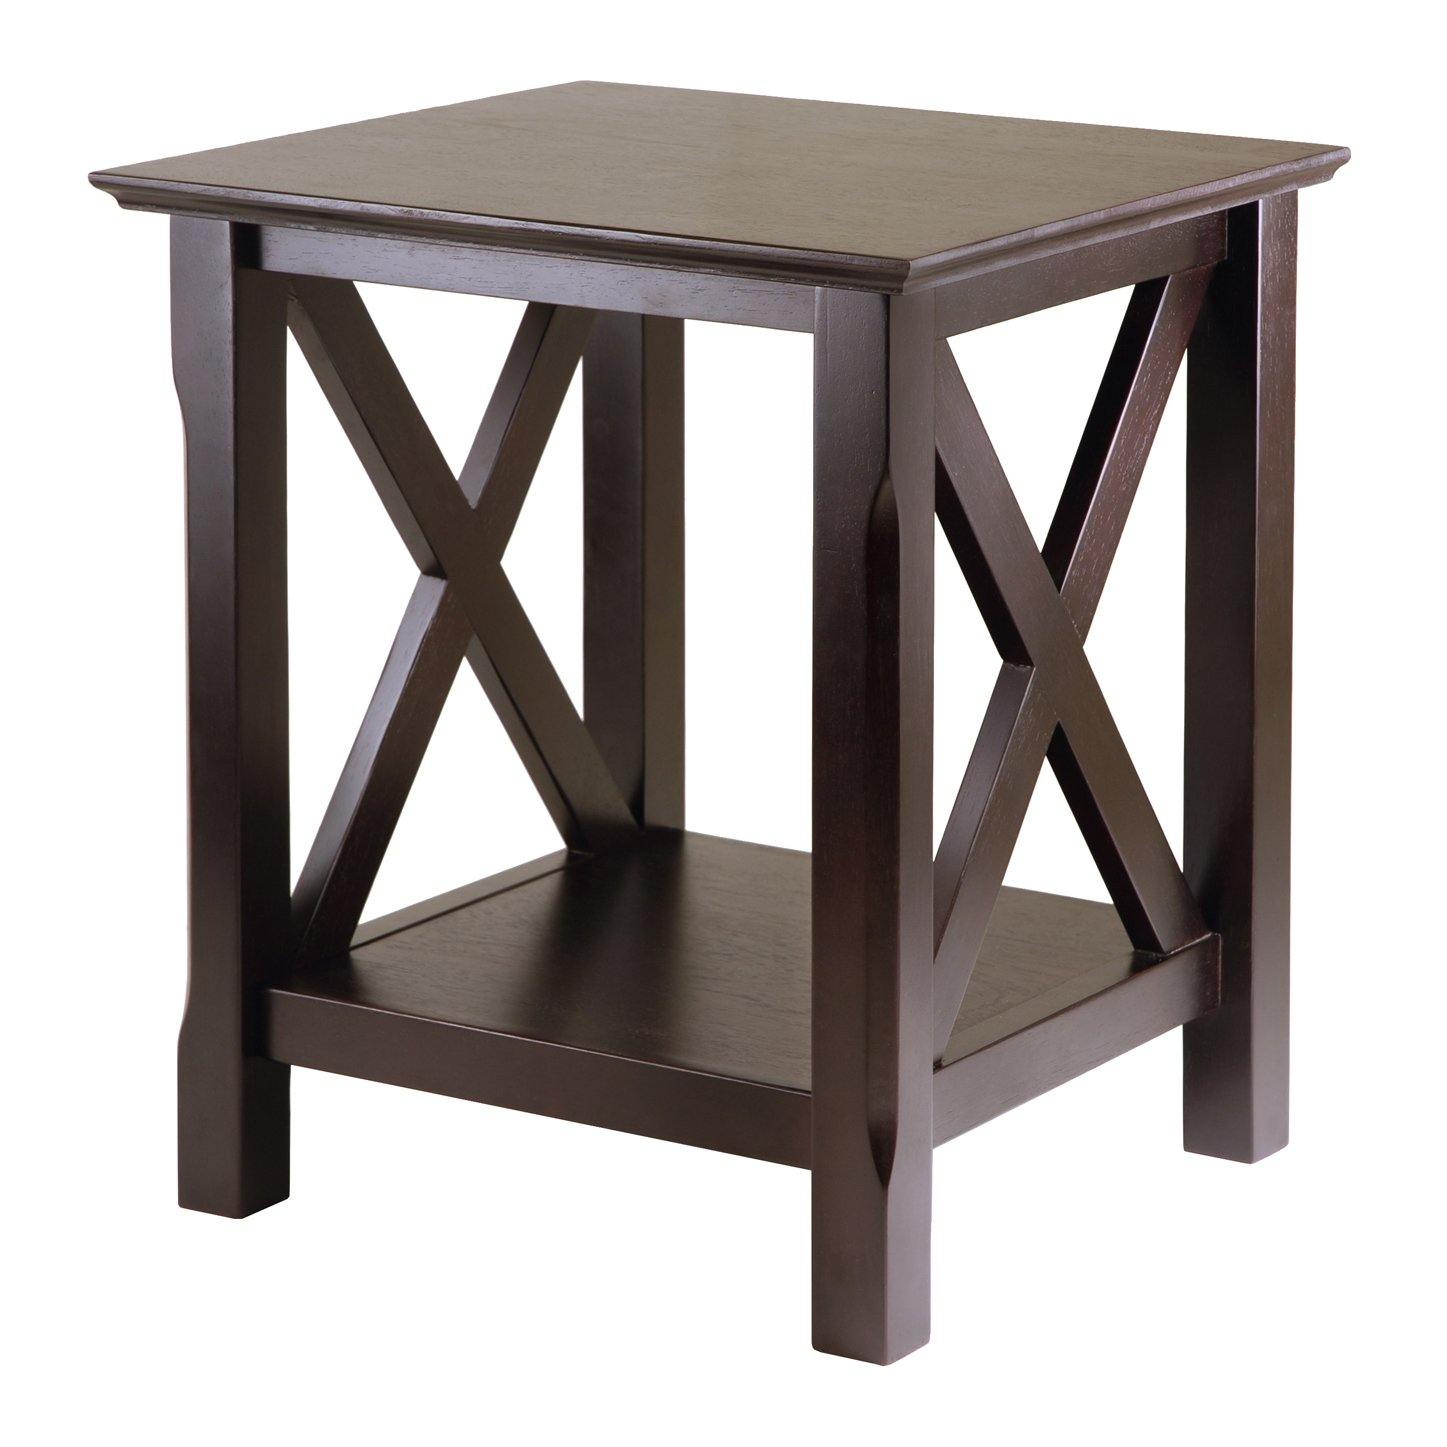 Xola End Table - My USA Furniture